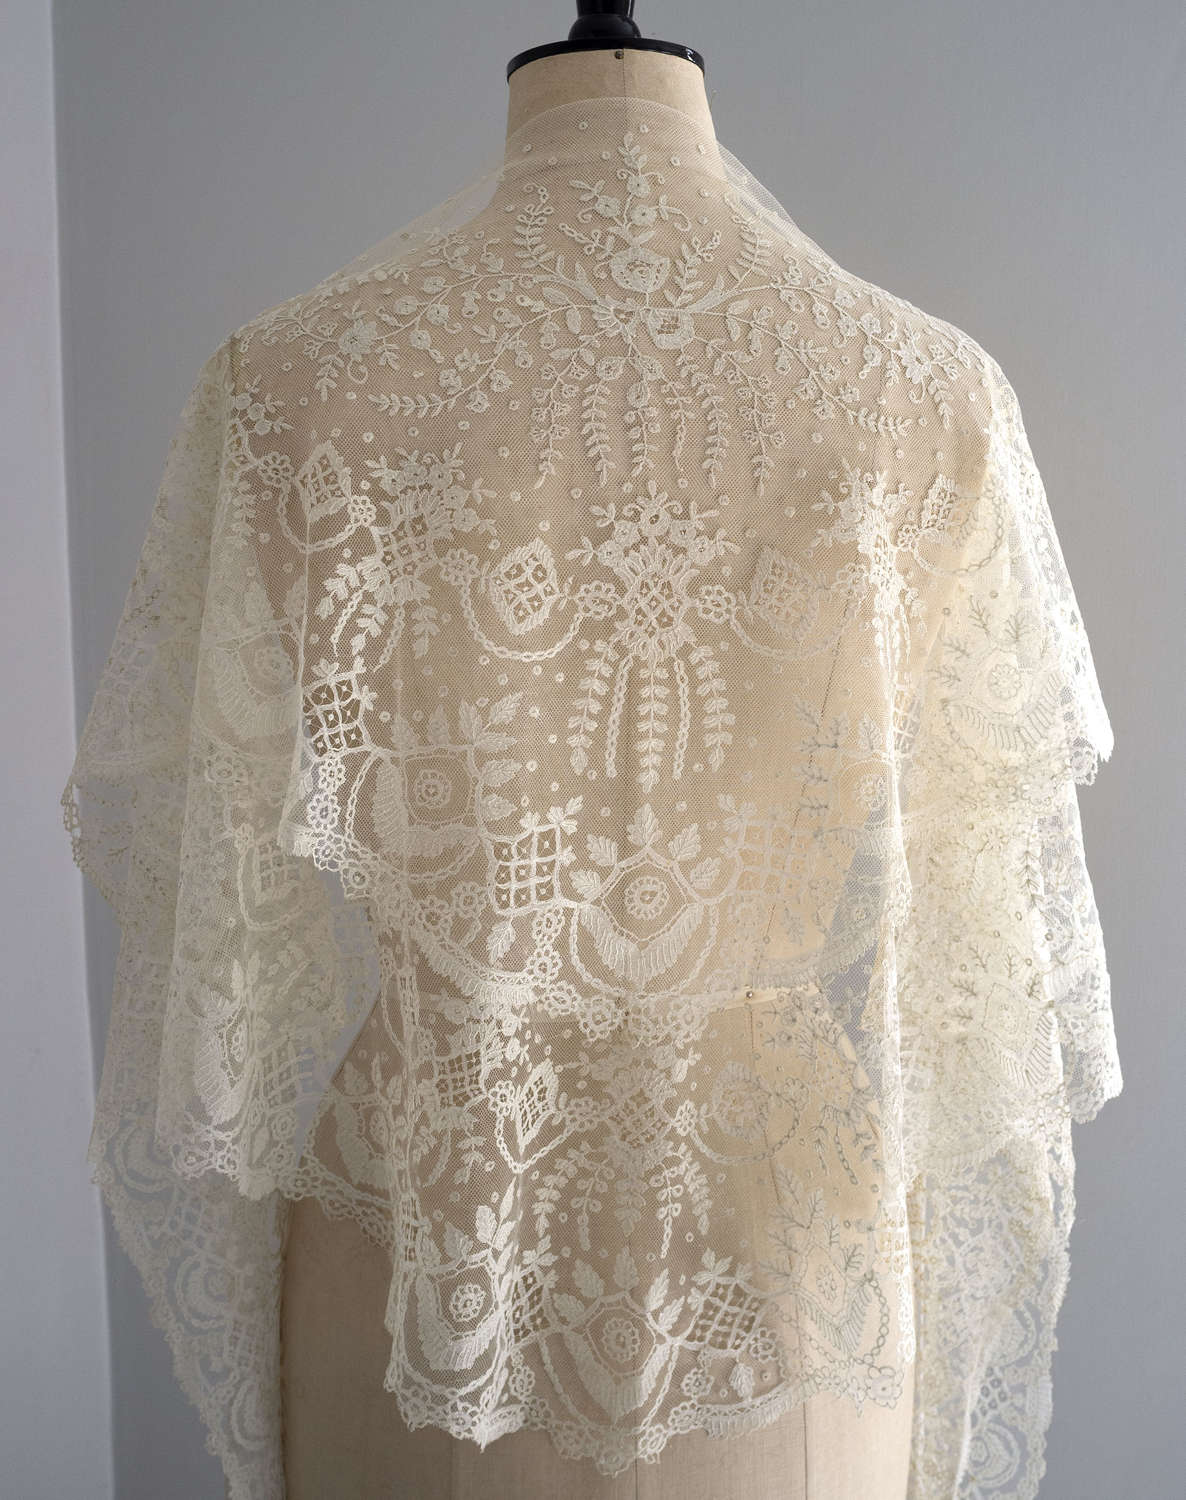 Antique Brussels Applique Lace Shawl Circa 1860